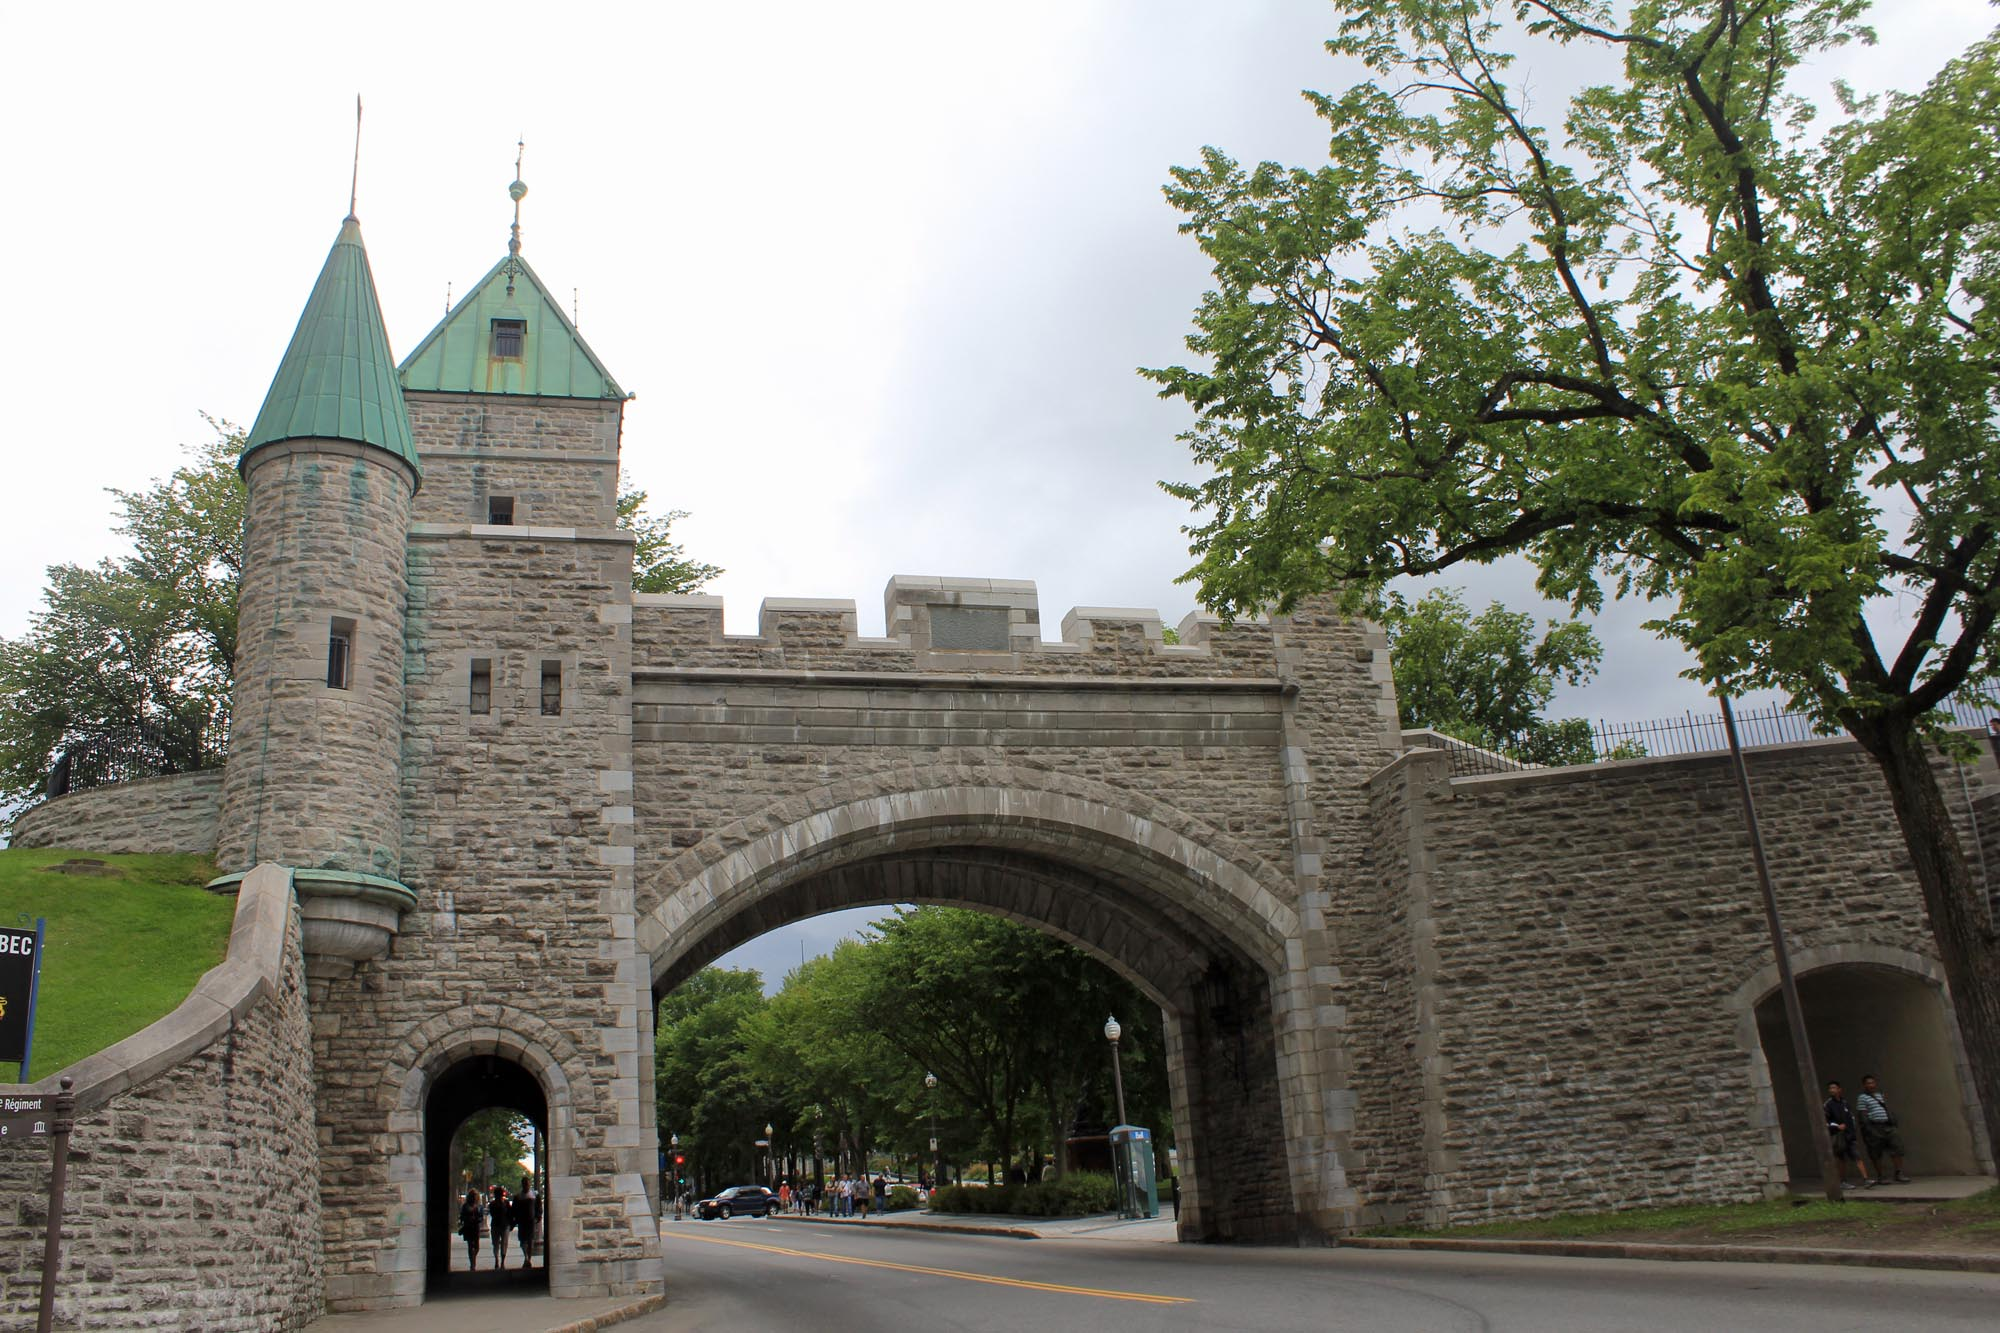 Quebec City, Saint-Louis gate